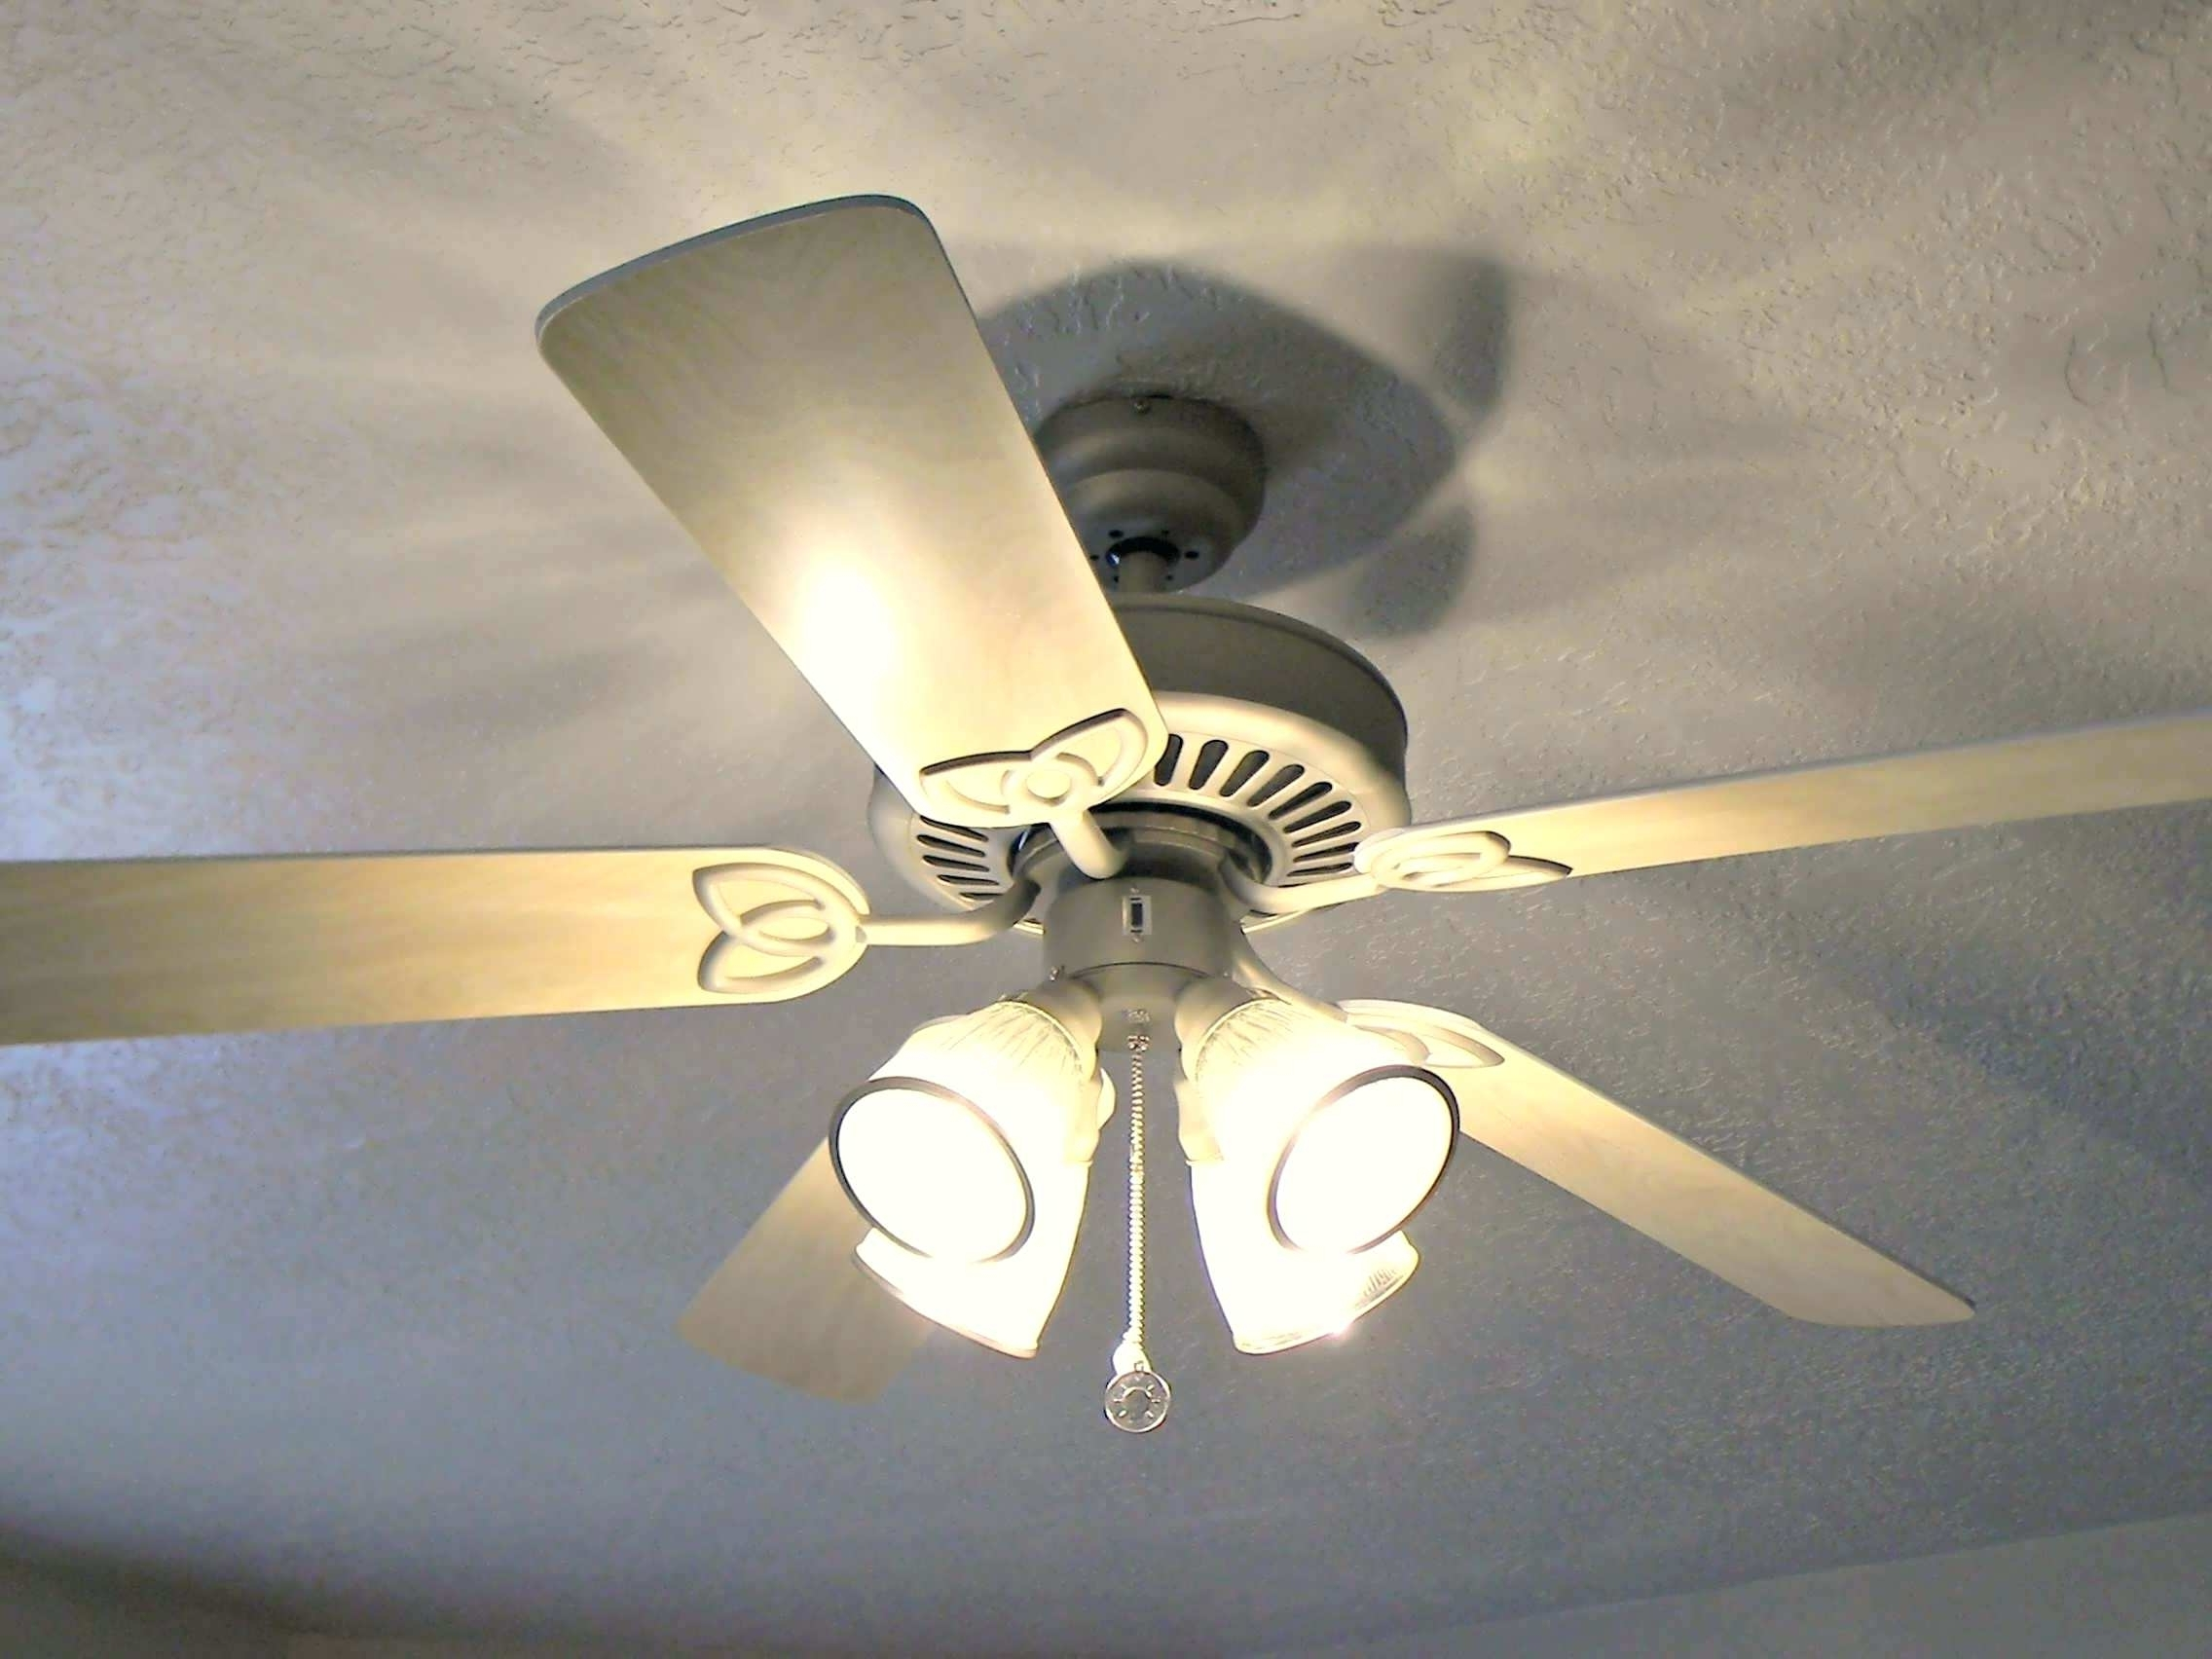 Outdoor Ceiling Fans At Menards For Well Known Light: Variety Of Styles To Complement Your Home Decor With Menards (View 8 of 20)